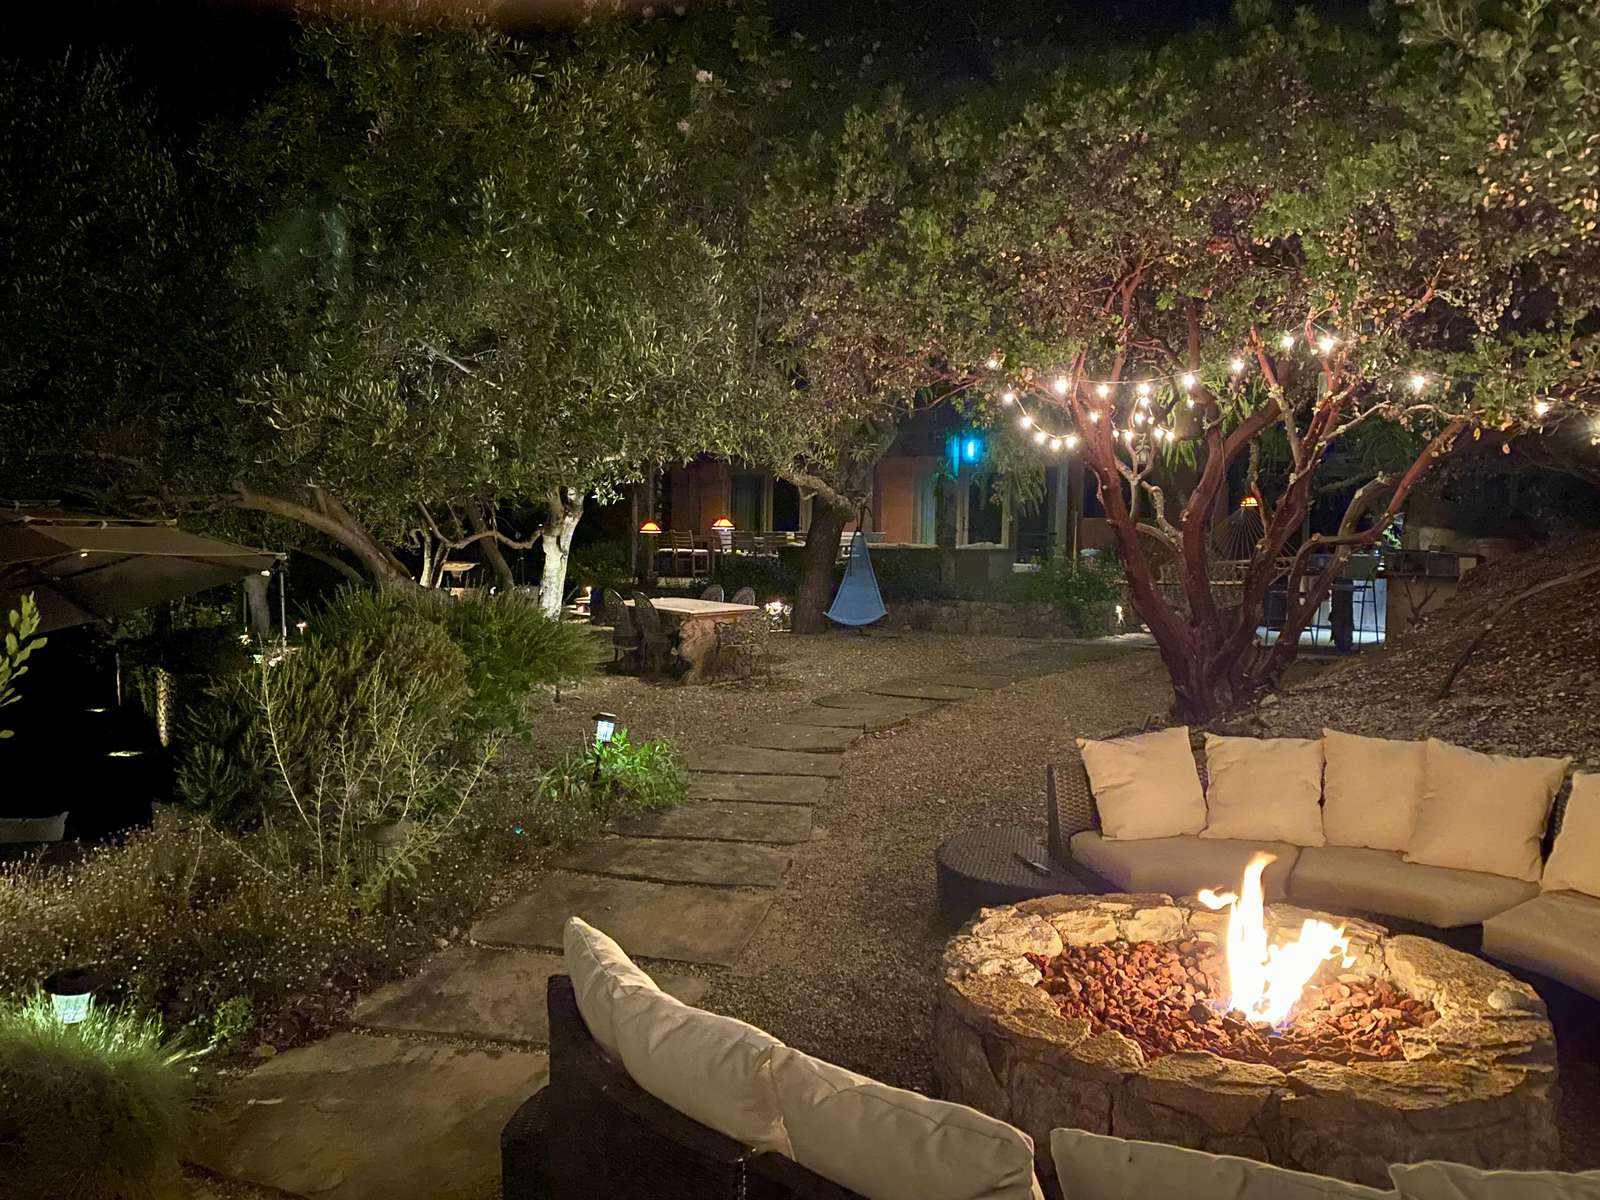 Relax and stay warm in the evening by the family-sized fire pit